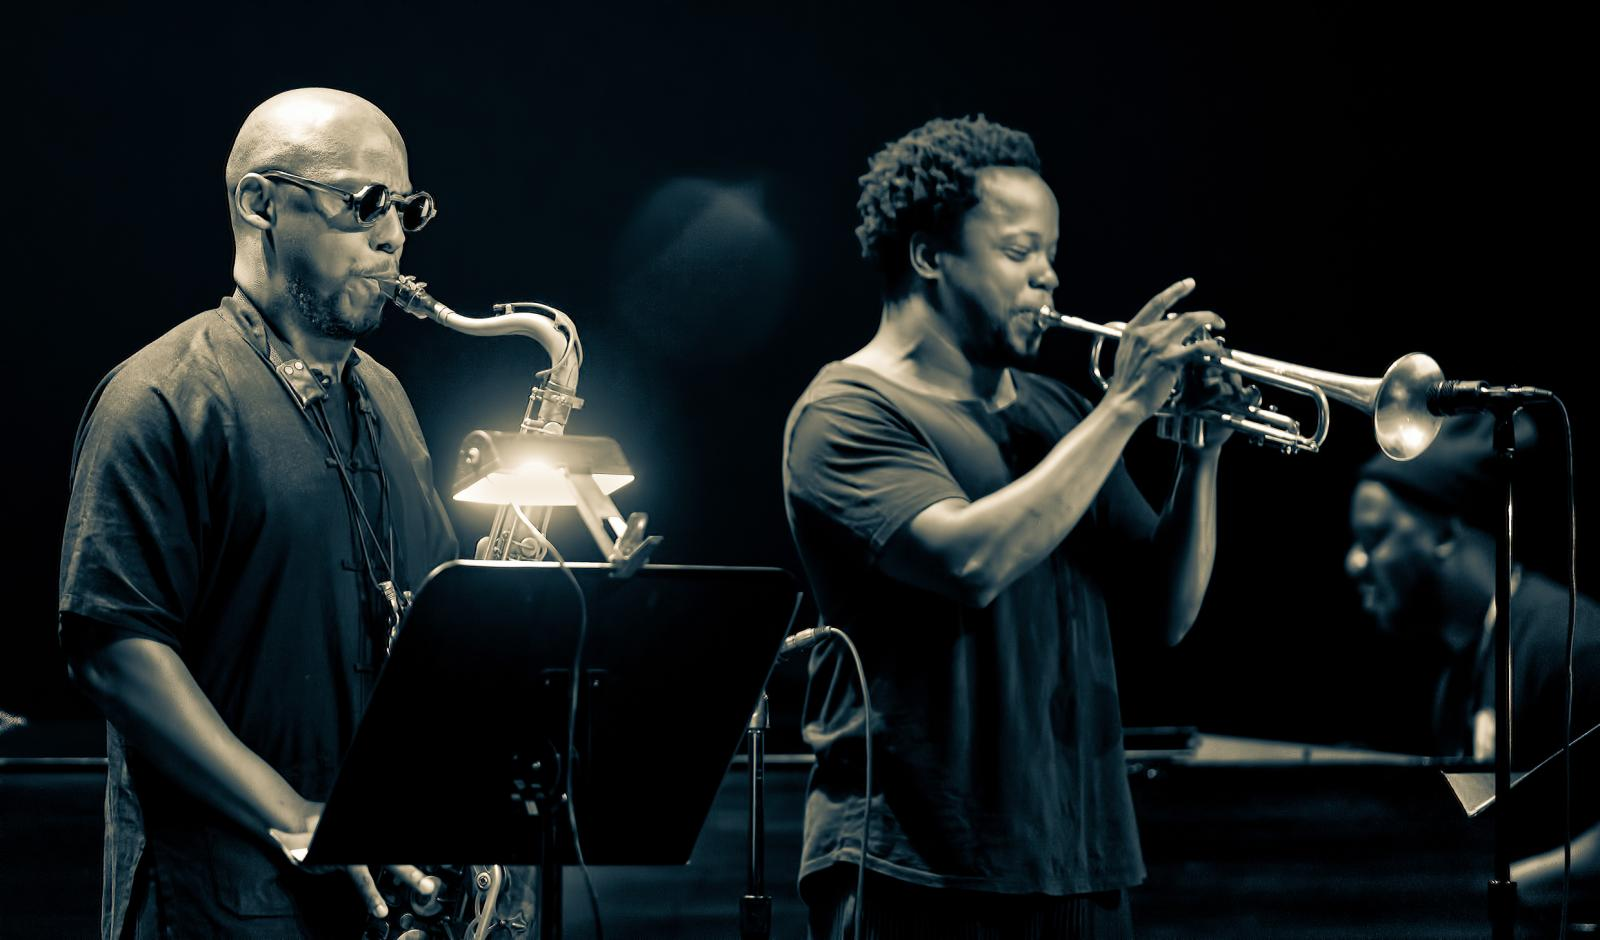 Marcus Strickland and Ambrose Akinmusire with Blue Note 75 at the Montreal International Jazz Festival 2016